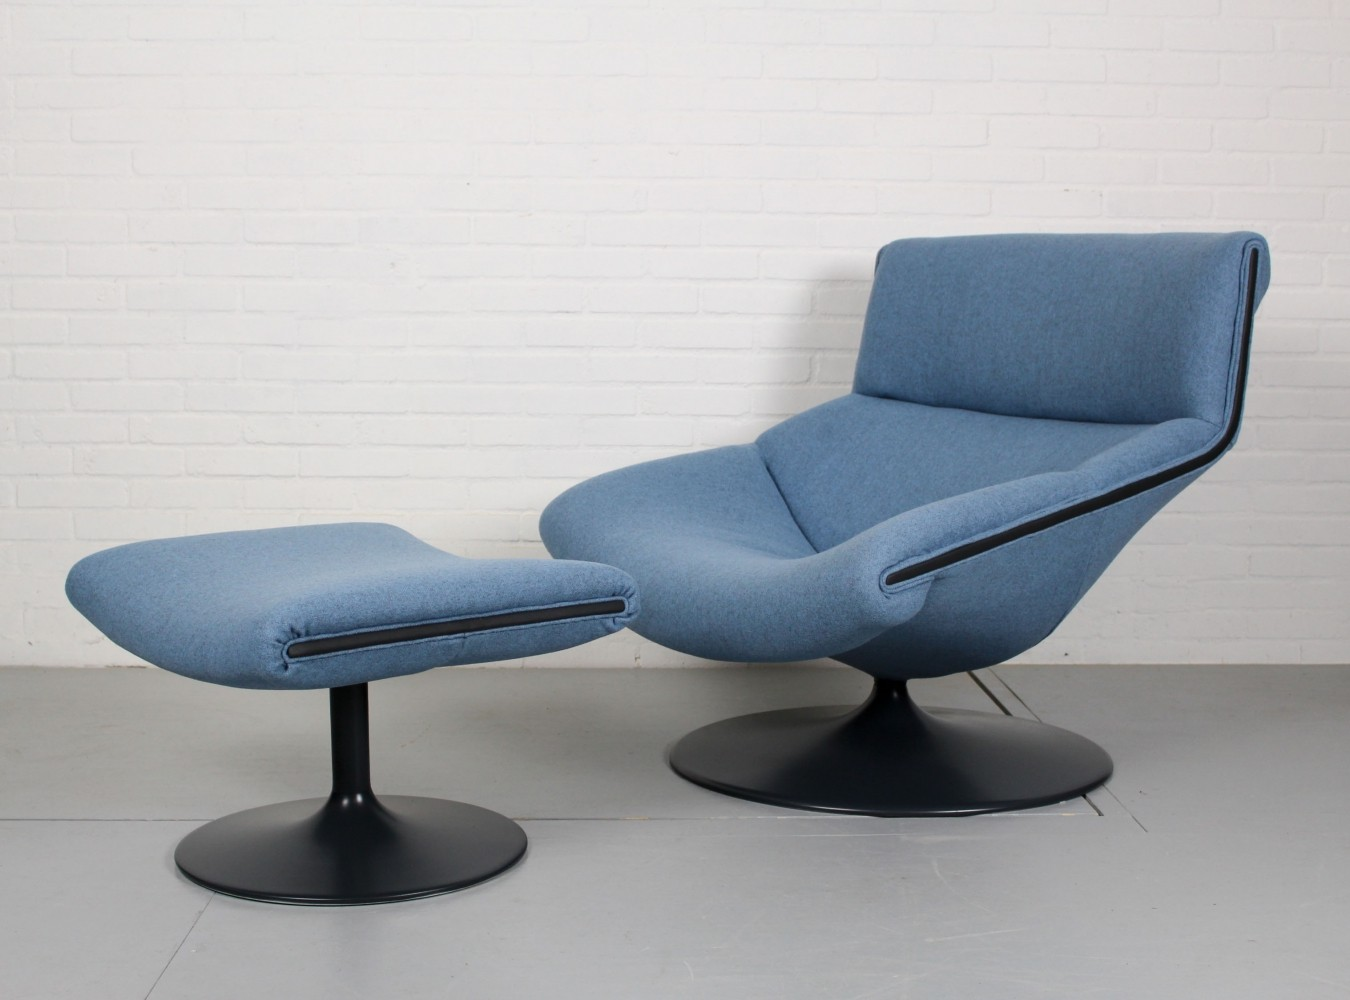 F520 lounge chair + ottoman by Geoffrey Harcourt for Artifort, 1960s